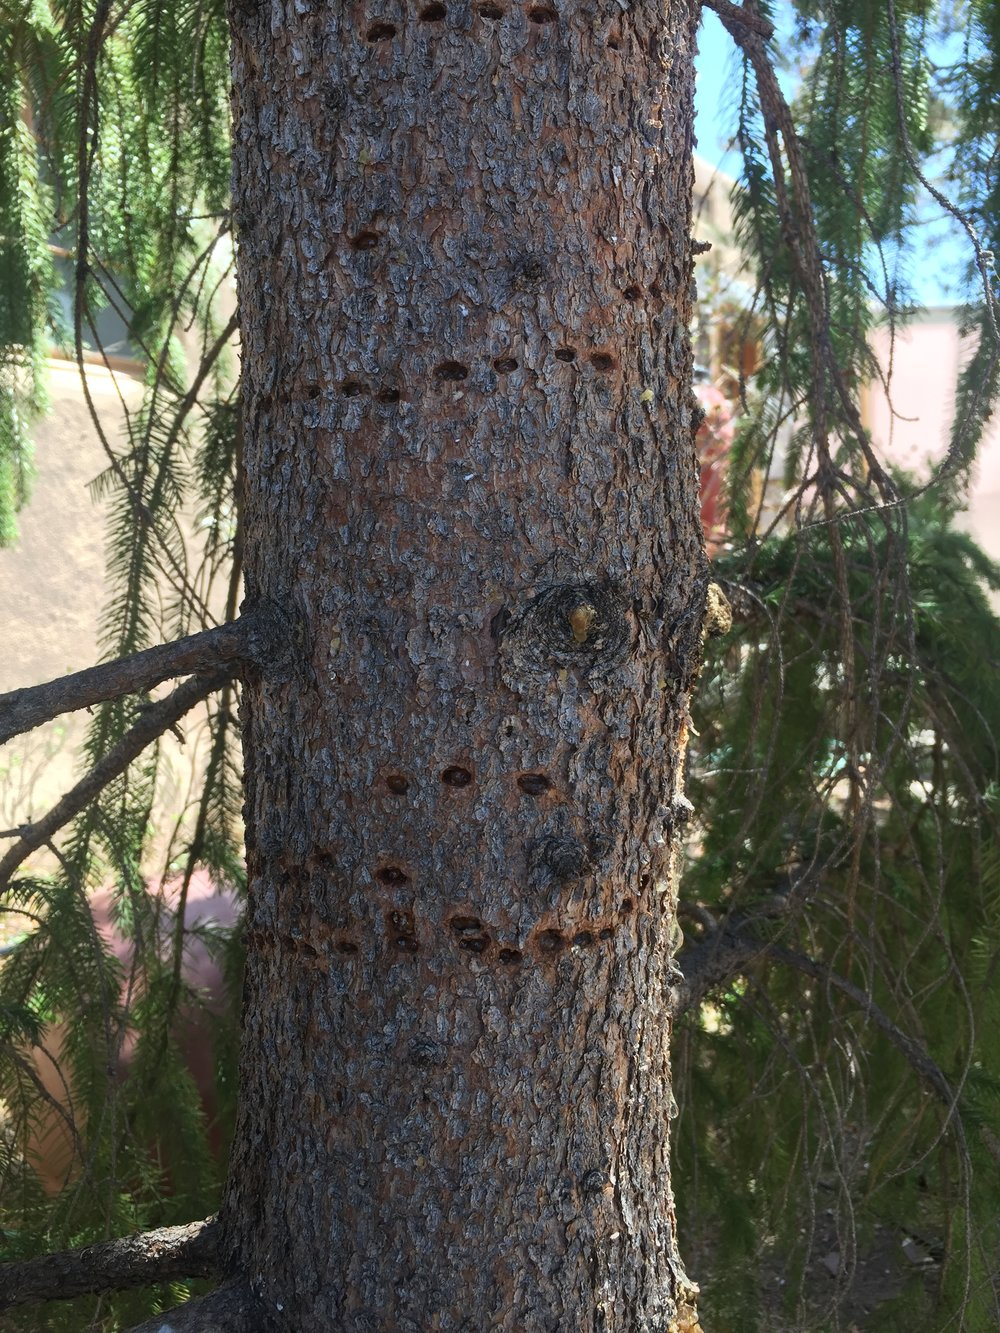 A woodpecker pecked this tree to locate the beetle larvae living under the bark. Tree thinning promotes individual tree health.